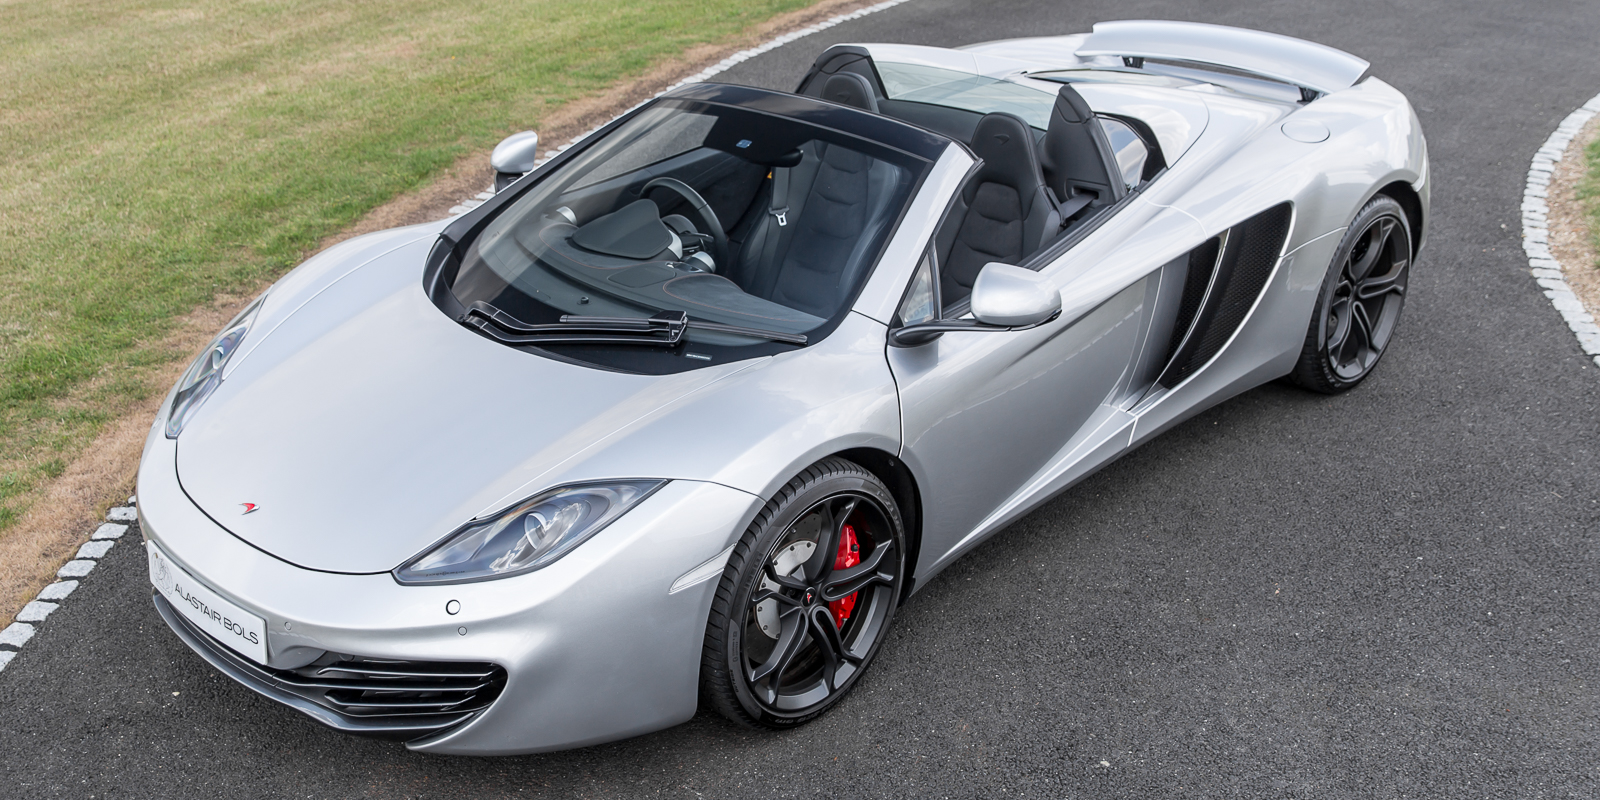 McLaren 12C Spider in Supernova Silver